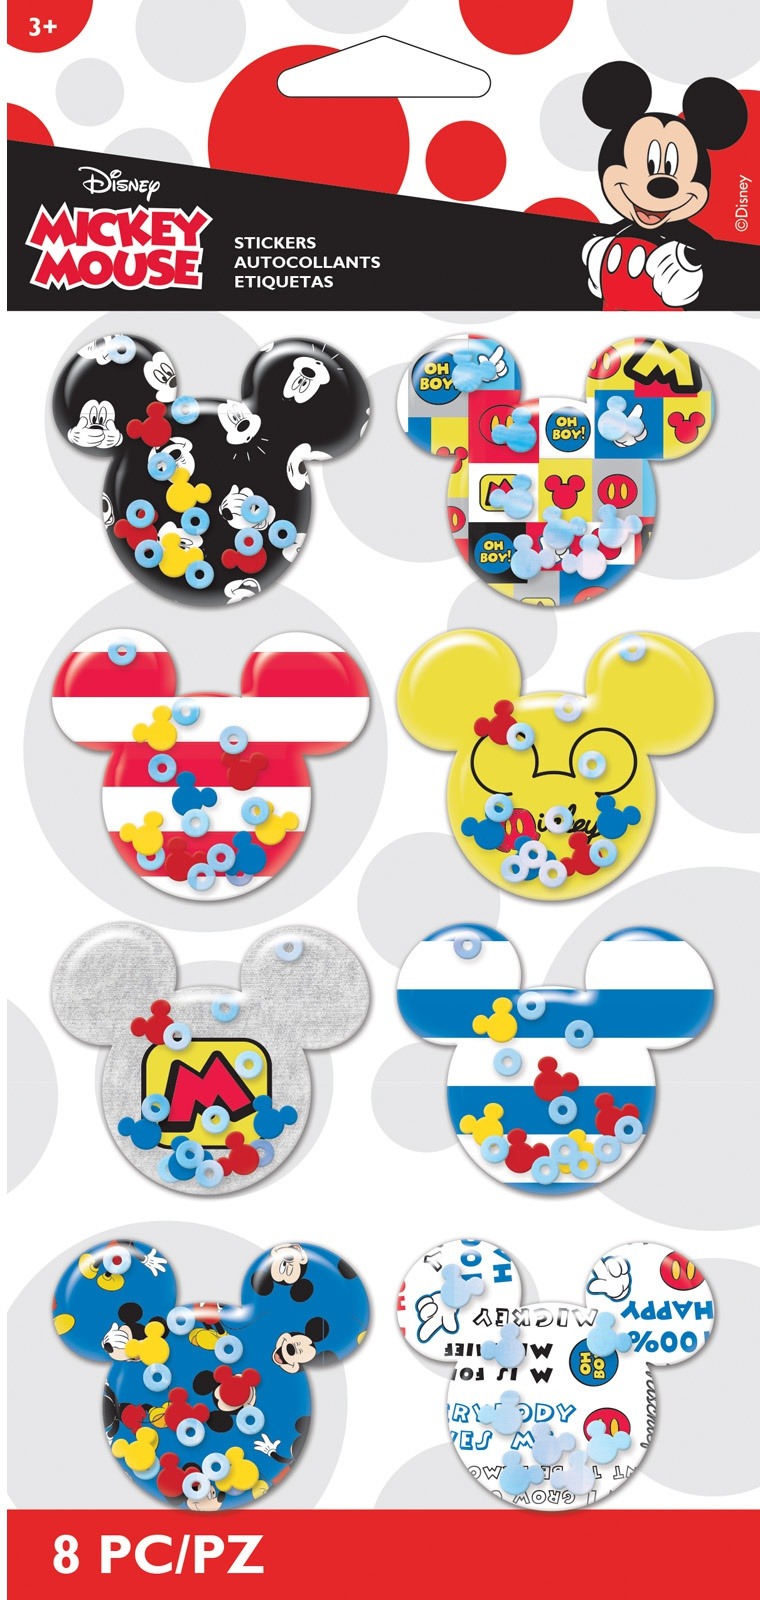 EK Disney Shaker Stickers 8/Pkg-Mickey Ears